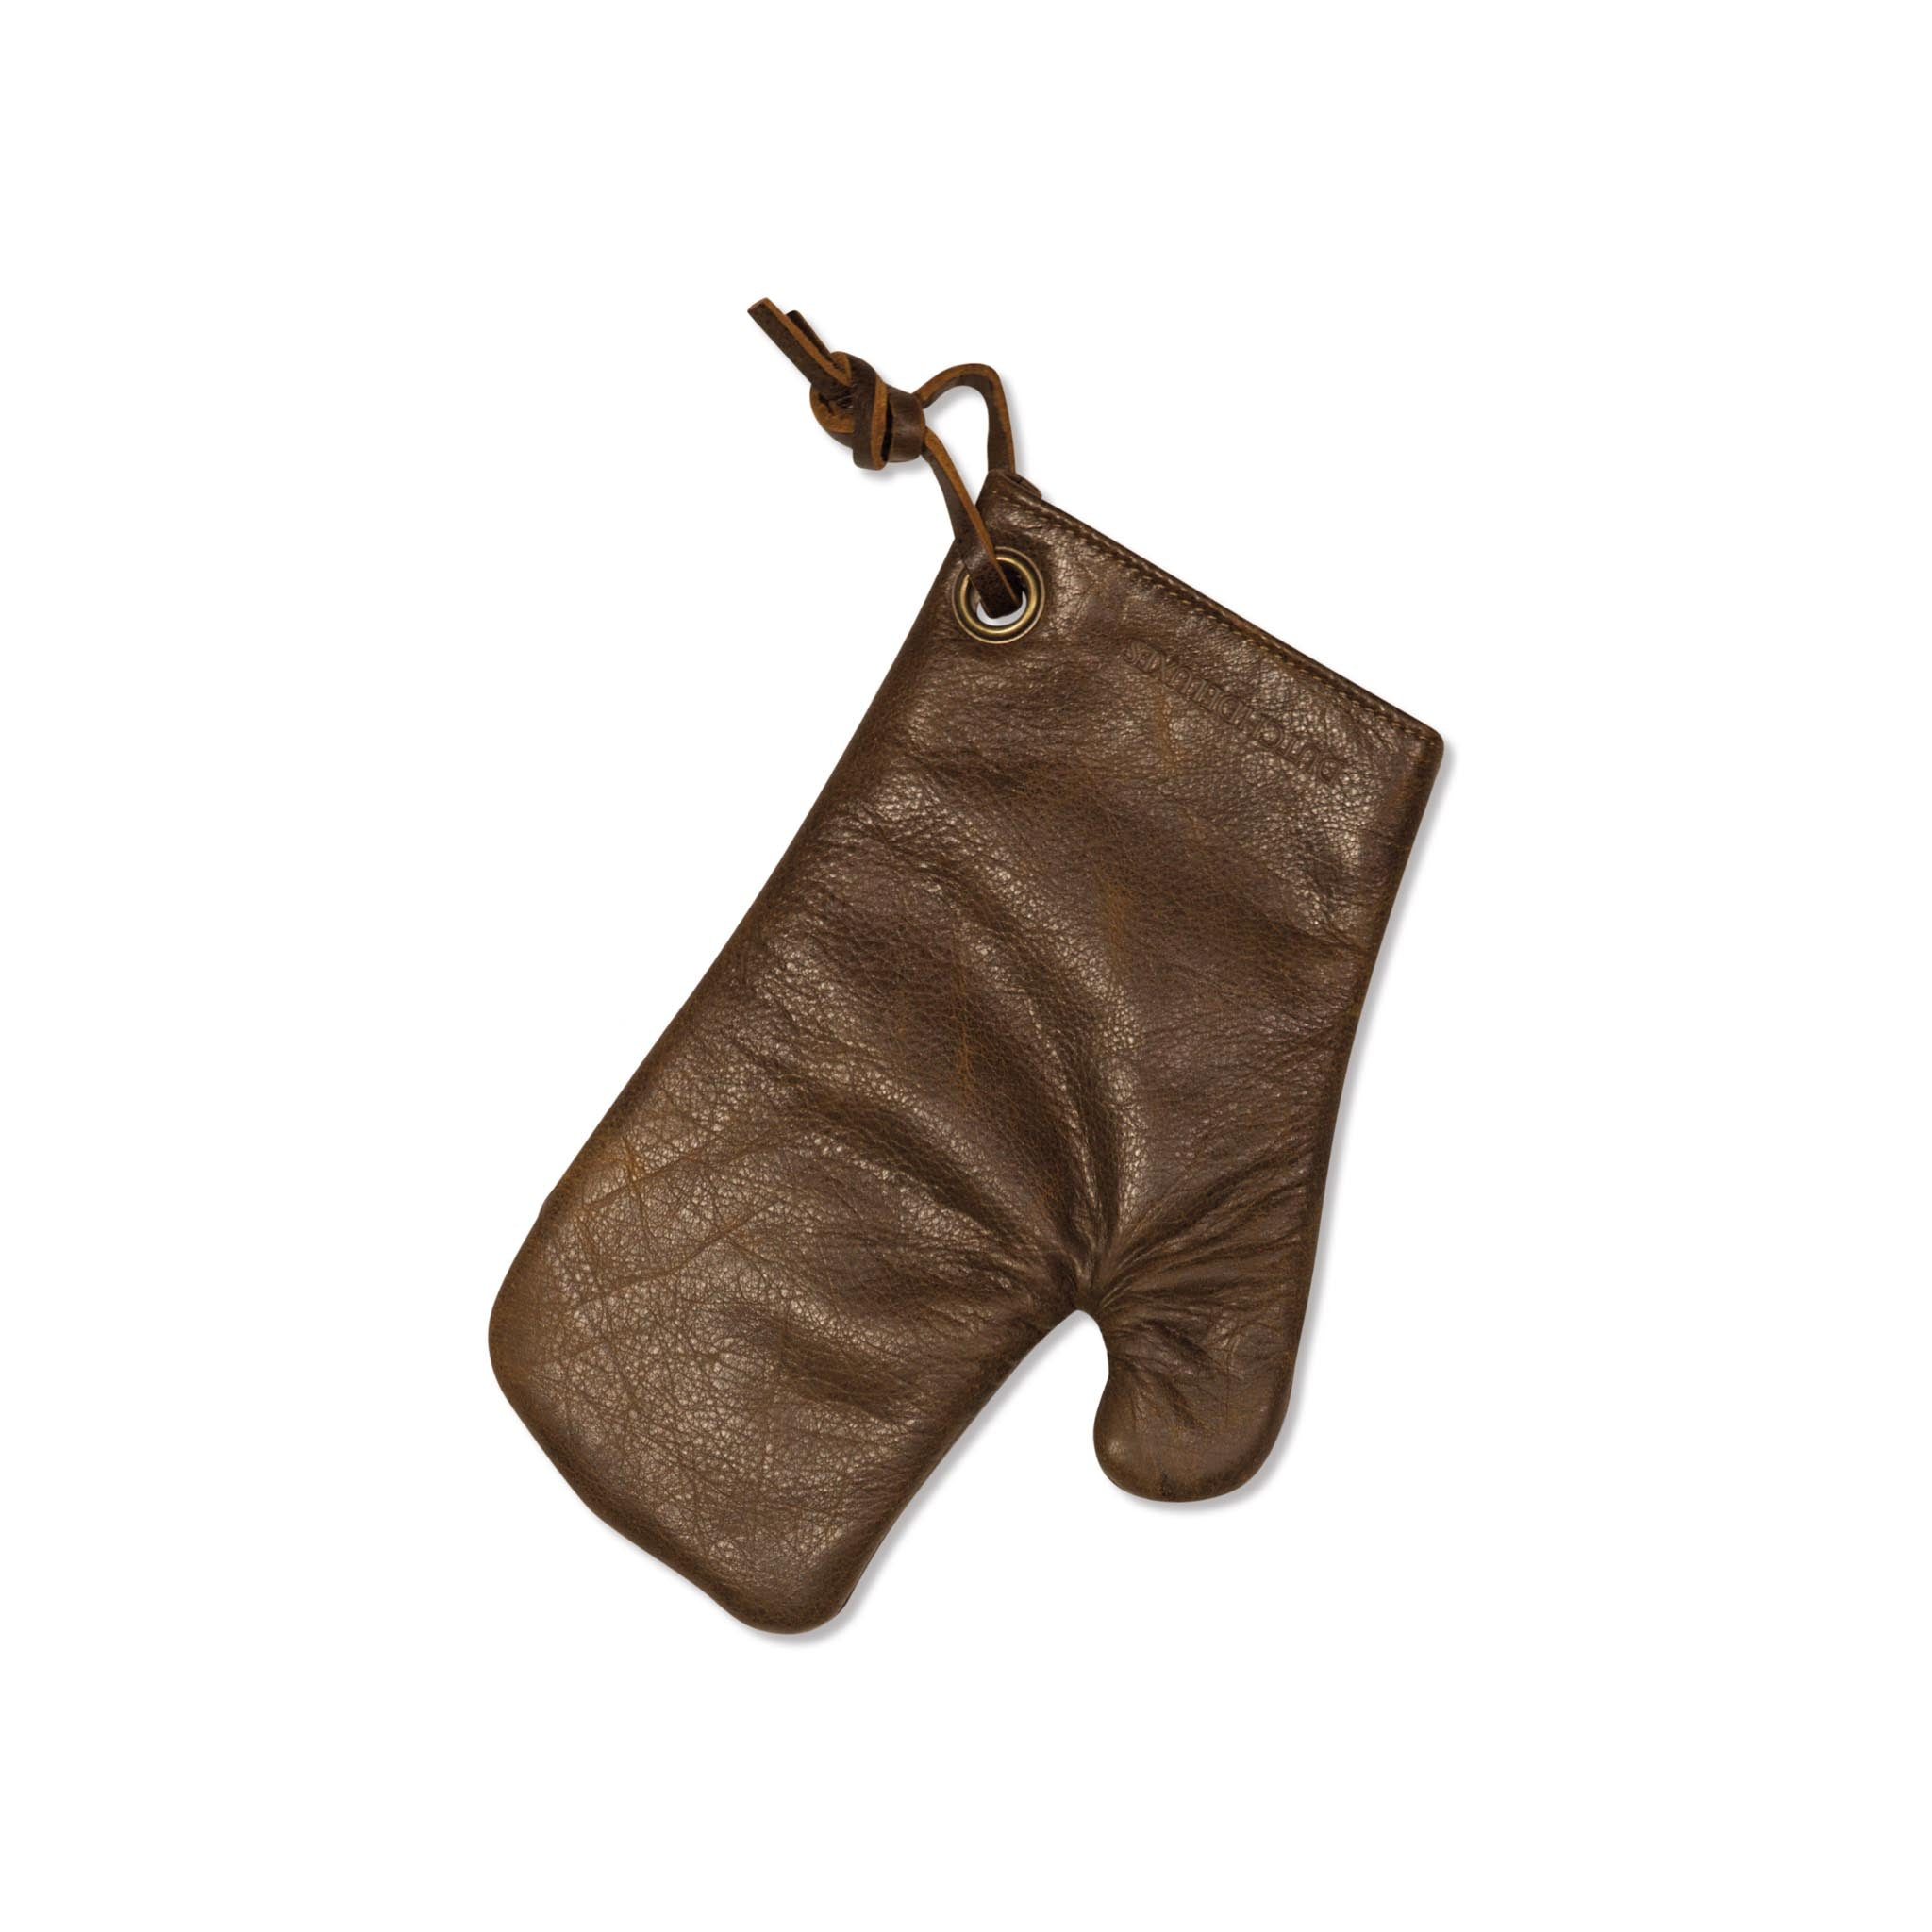 Dutchdeluxes Leather Oven Glove in Vintage Brown